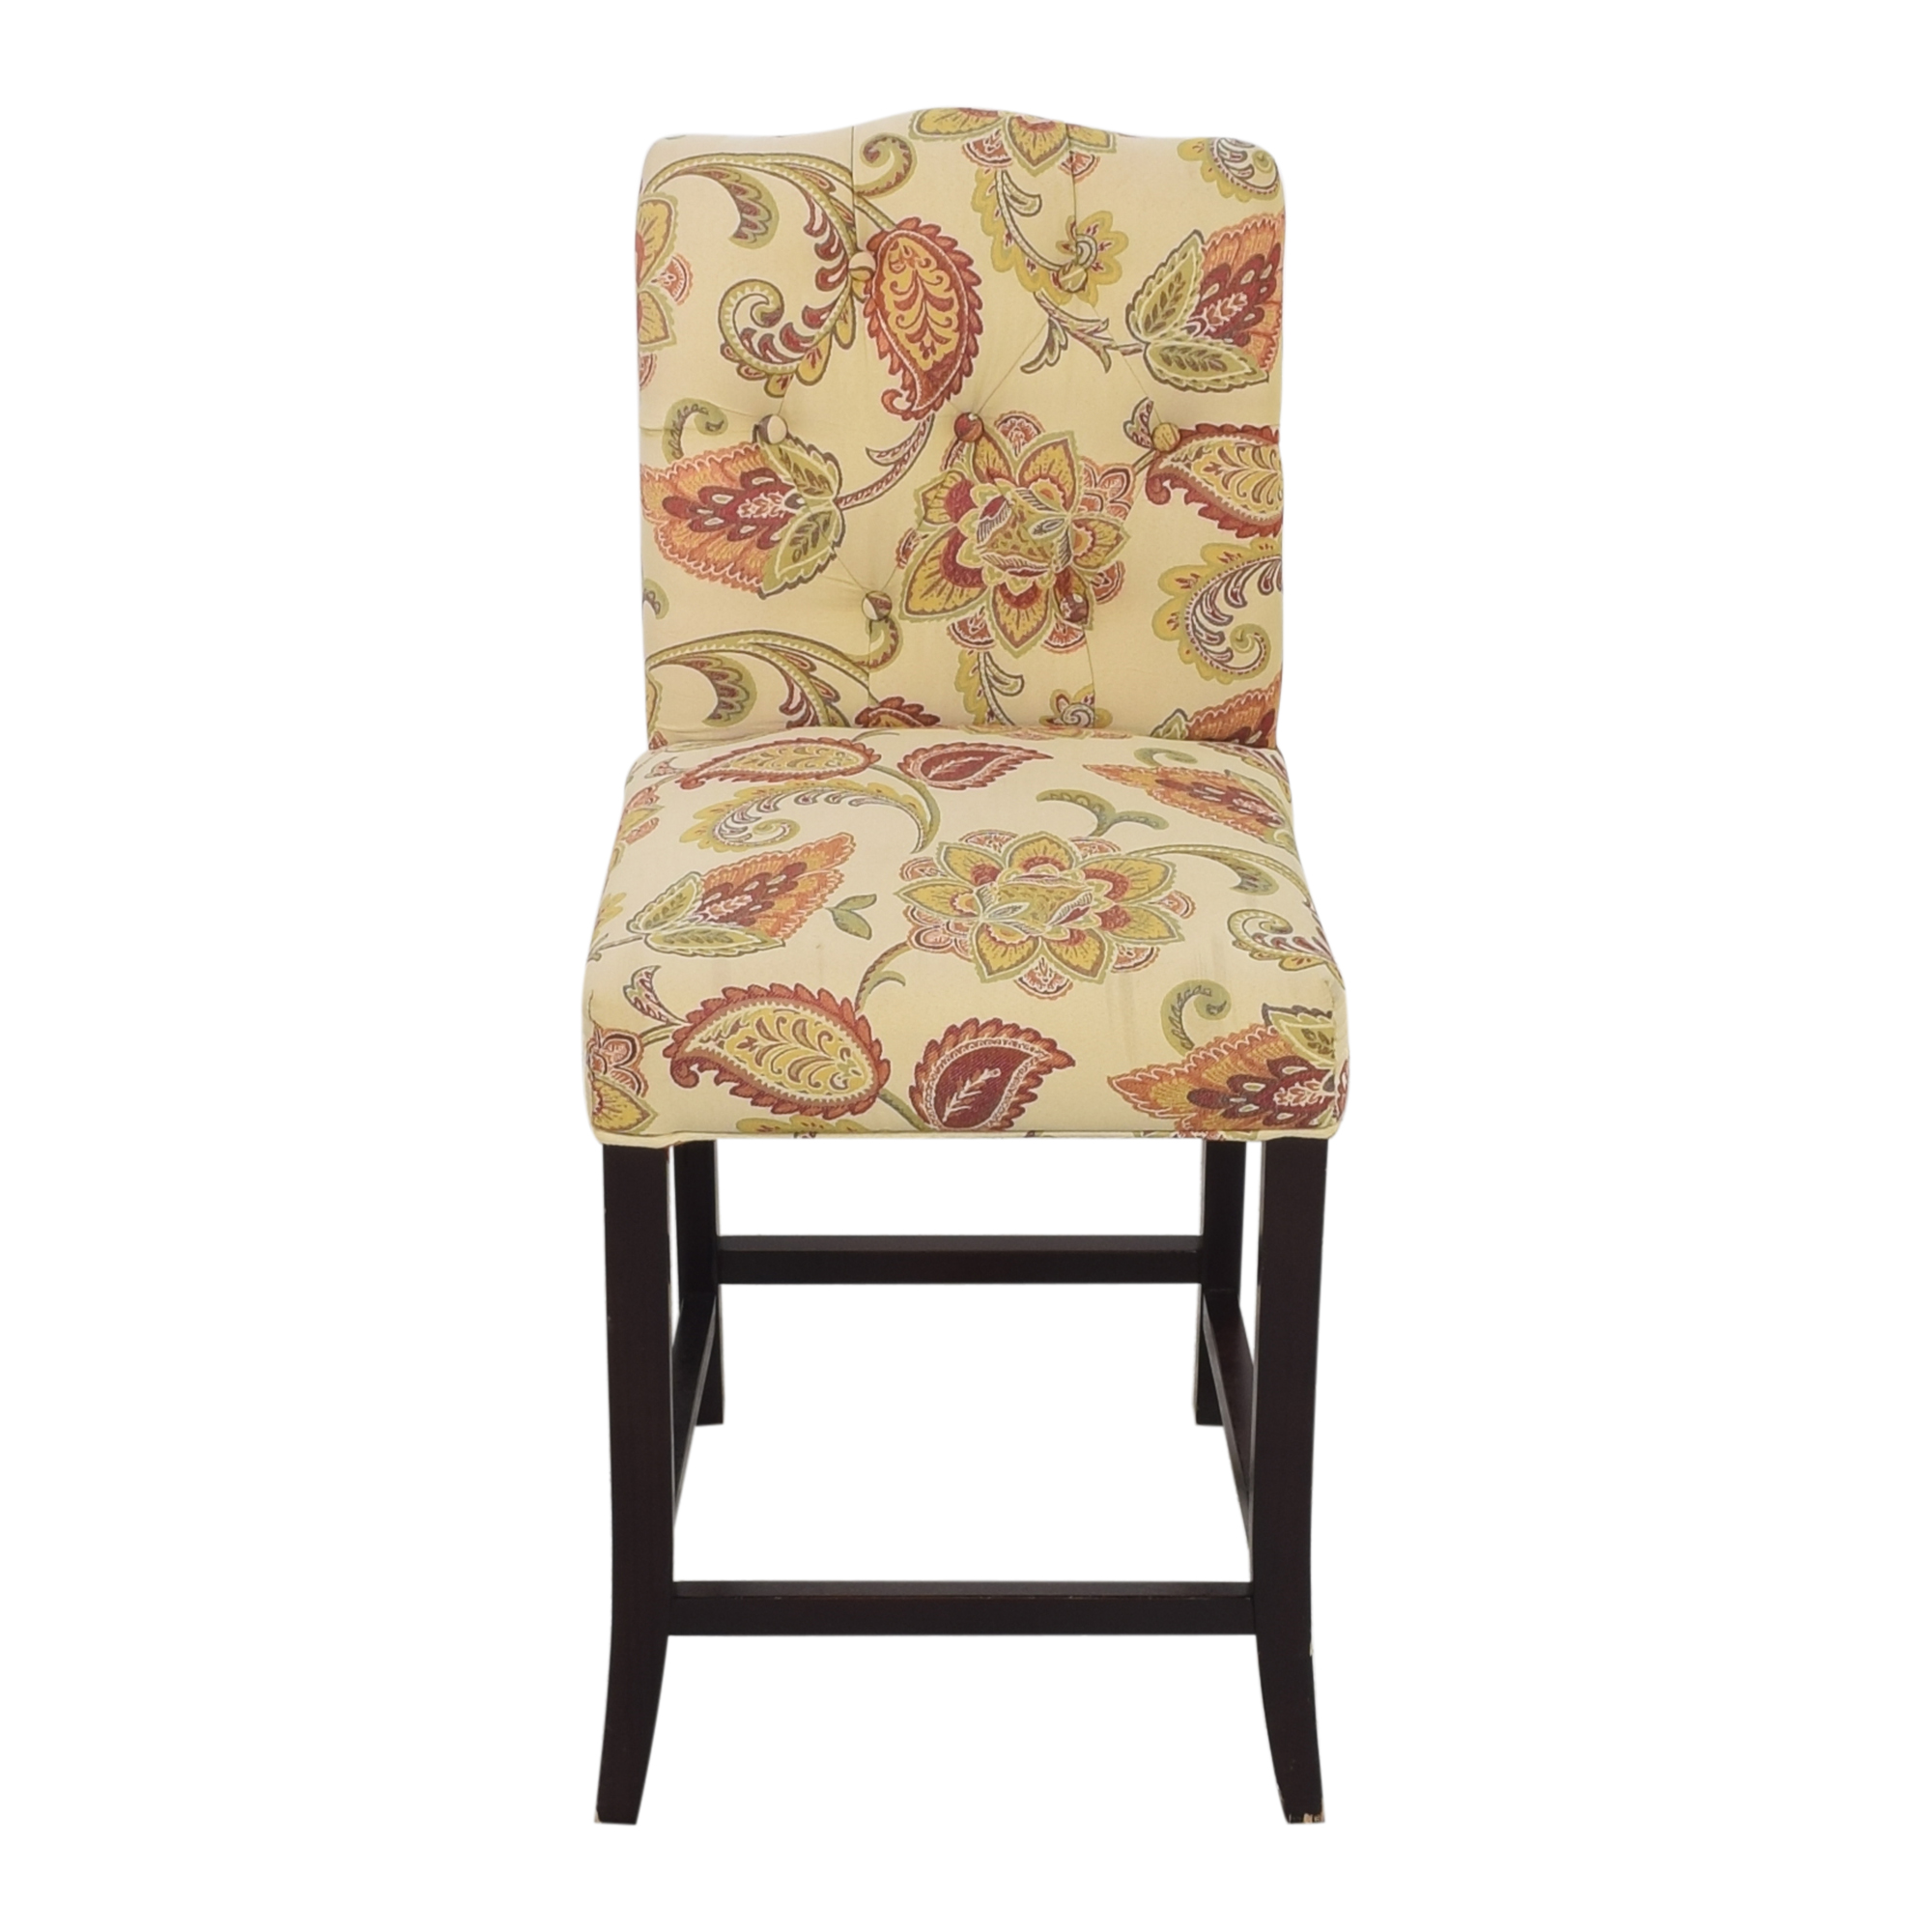 Pier 1 Pier 1 Upholstered Counter Stool price